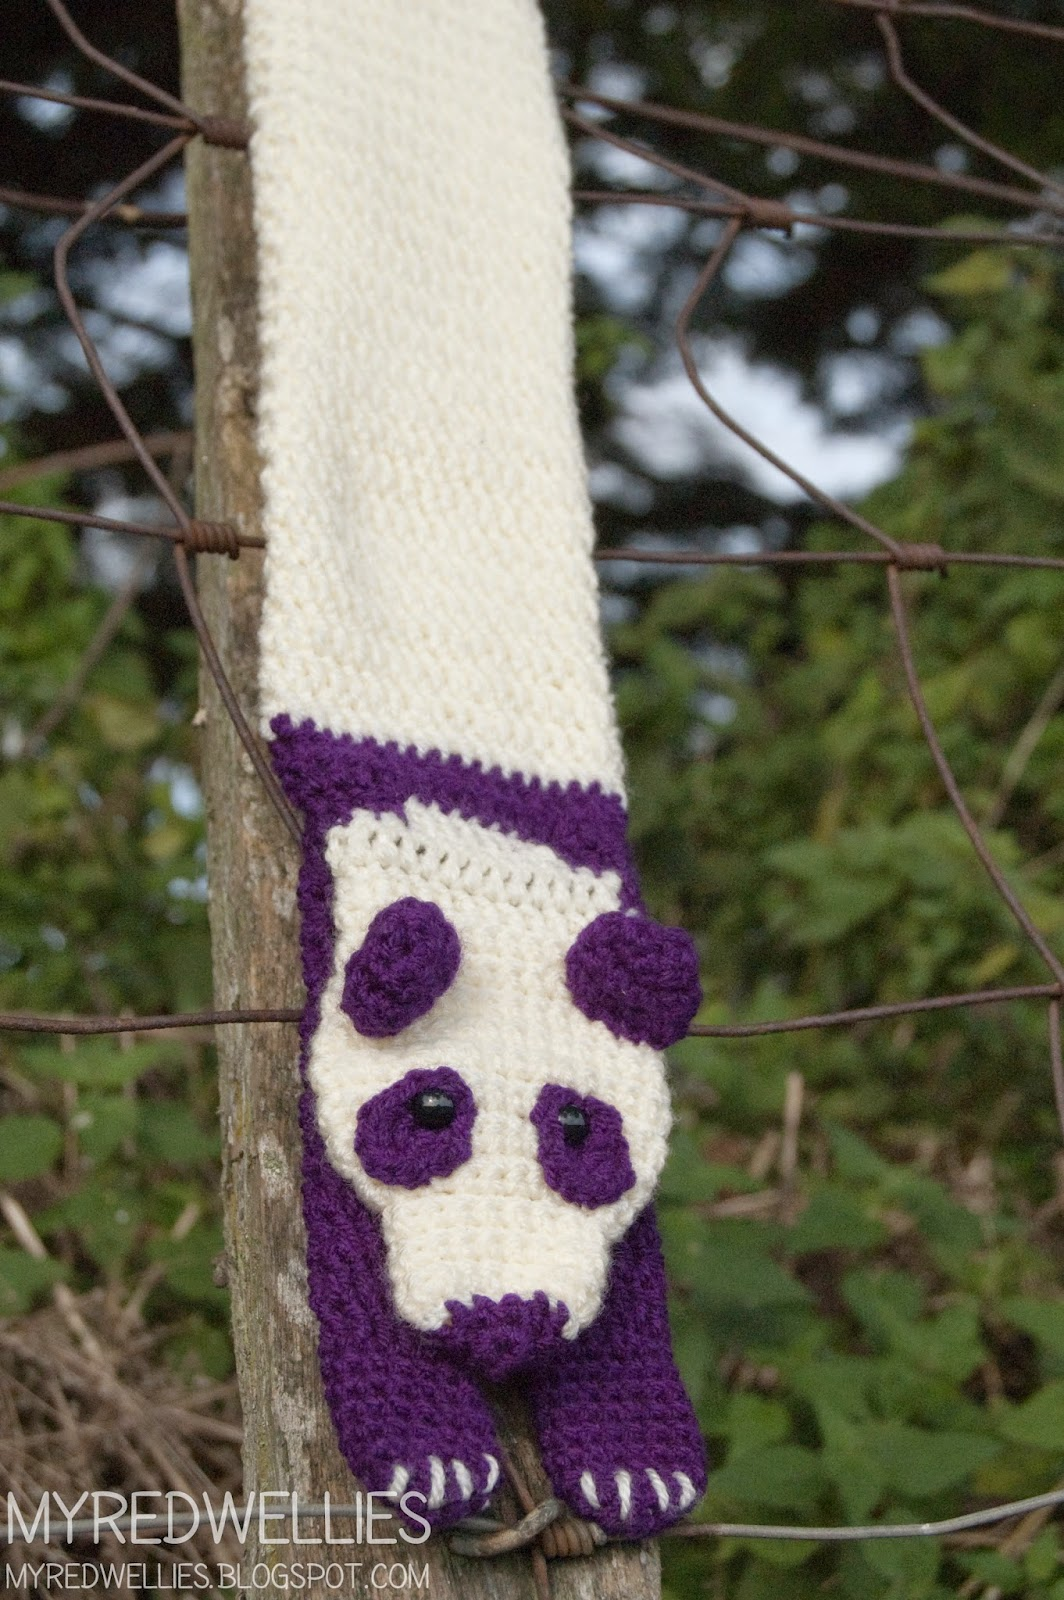 My Red Wellies: Purple Panda Scarf, a start on christmas.